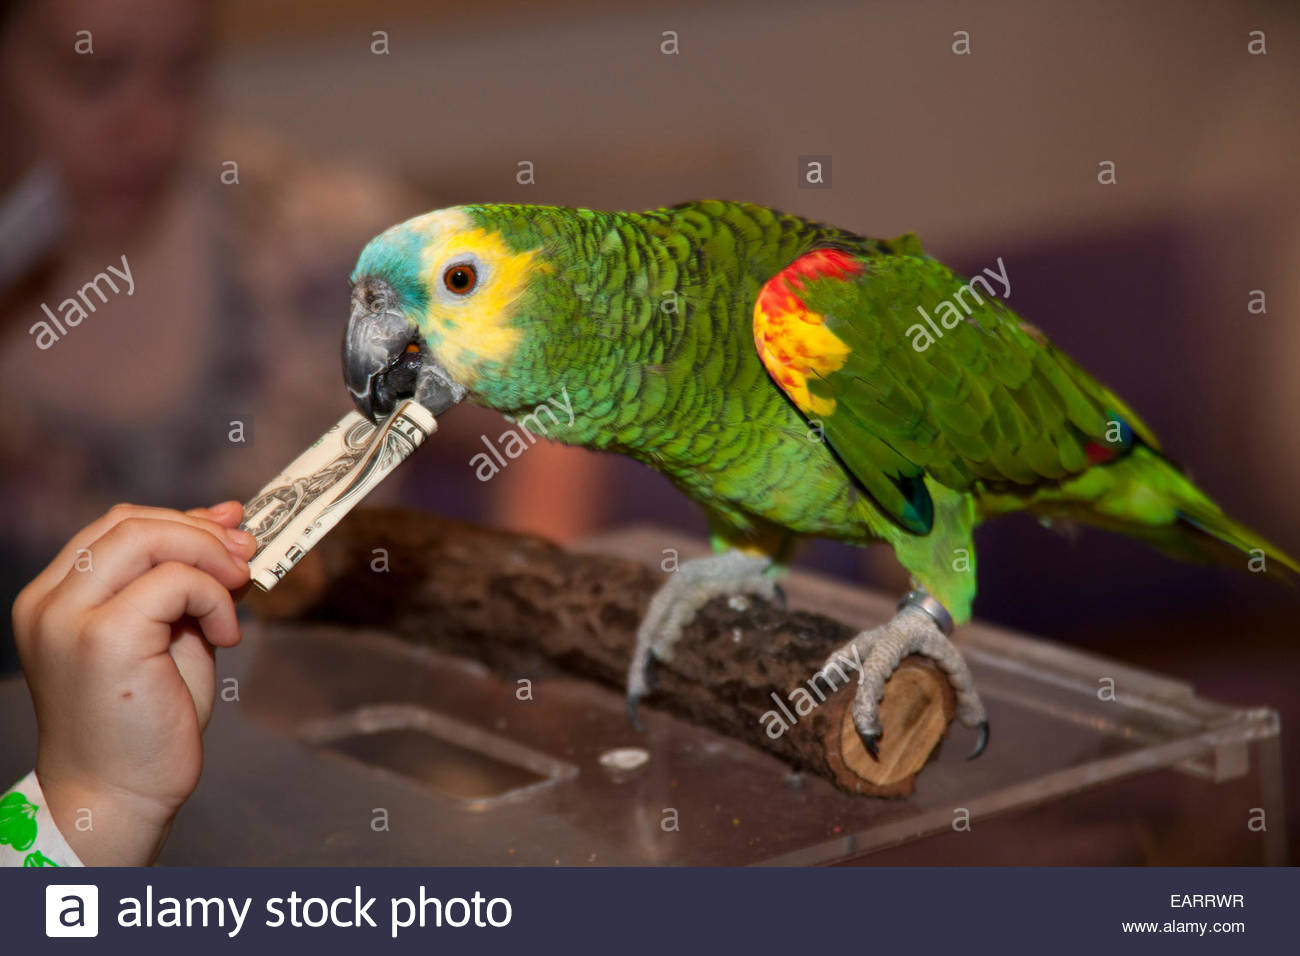 A trained Swainson's Lorikeet takes paper money and stuffs it into a box. - Stock Image